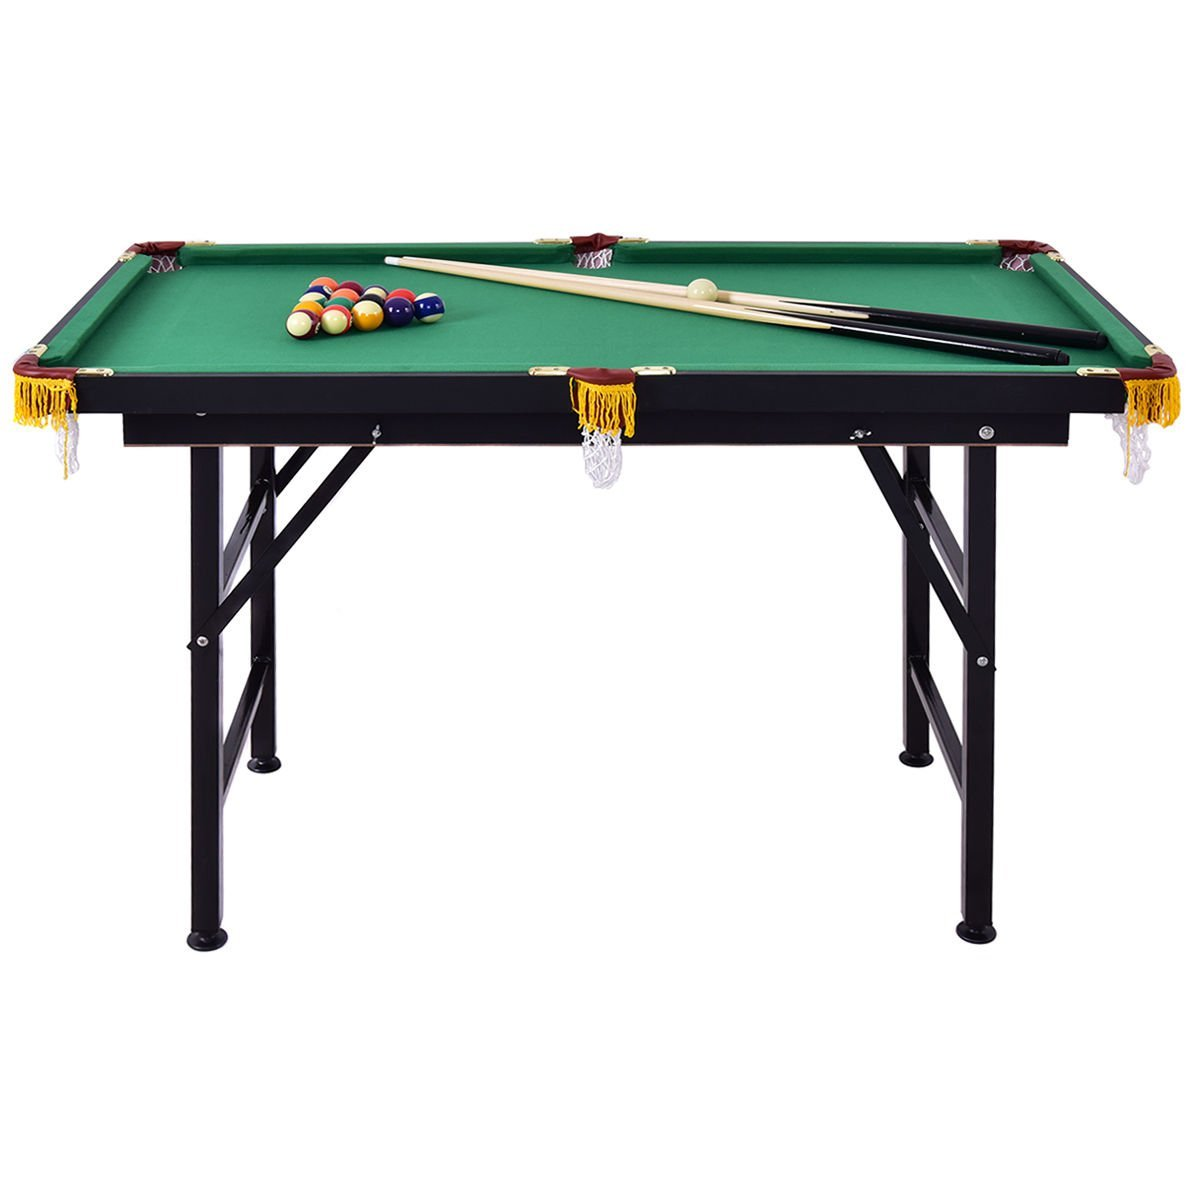 Mini Foldable Pool Table Portable Billiard Table With Cues Balls Best Children Boy Girls Kids Sports Game Toy